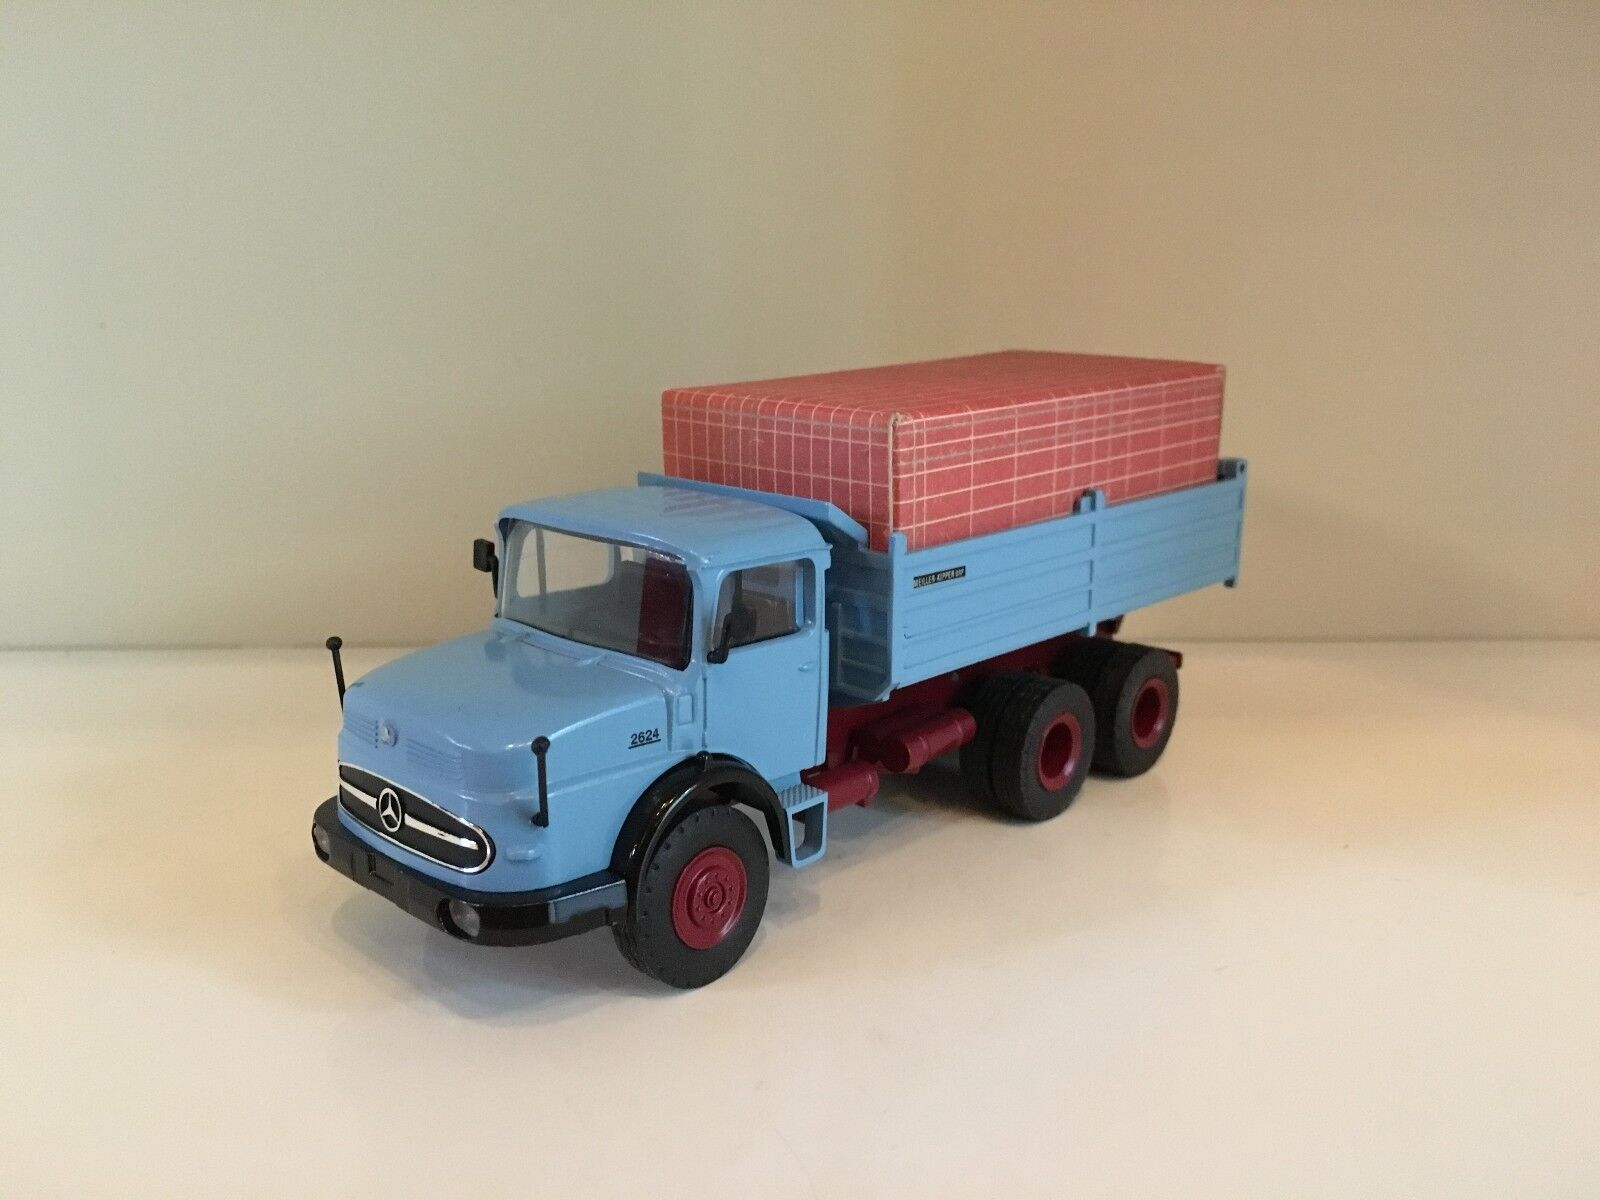 Mercedes Benz LAK 2624 6x6 Tipper bluee by NZG 427 1 50